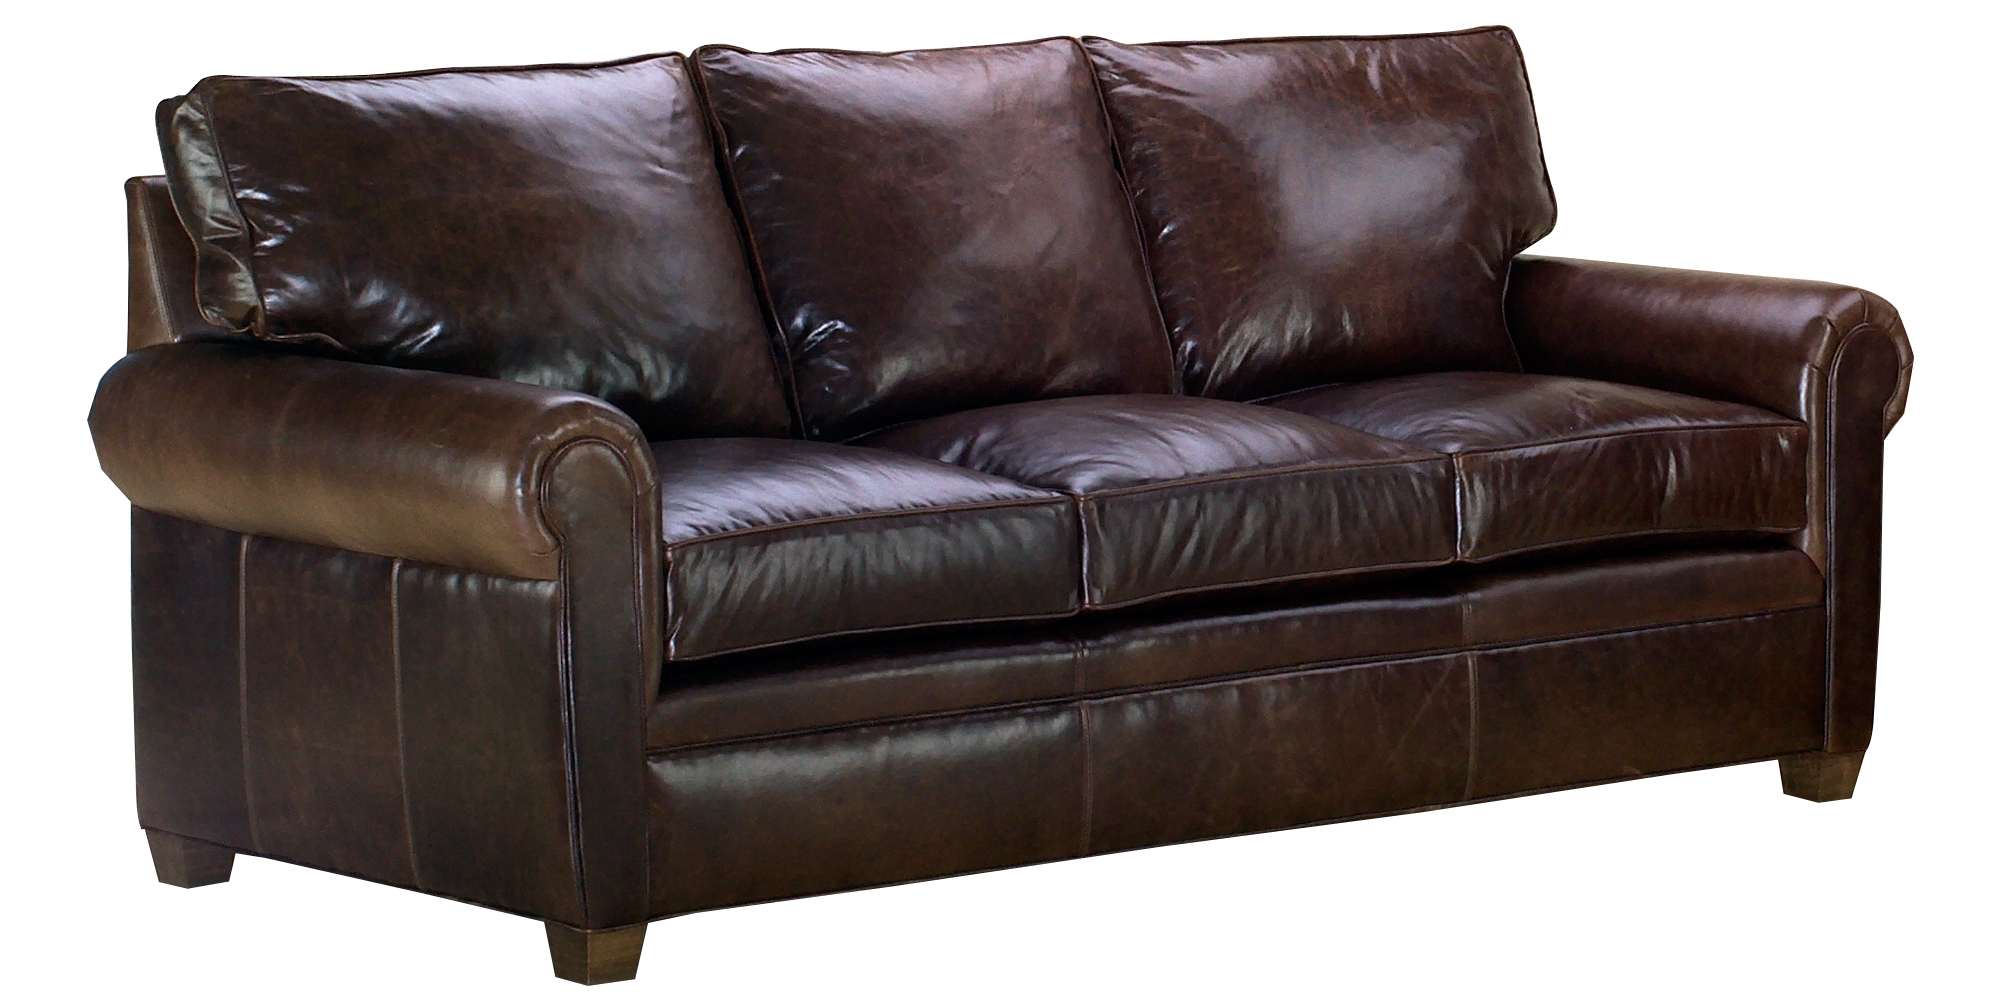 Classic leather sofa set with traditional rolled arms for Traditional leather furniture